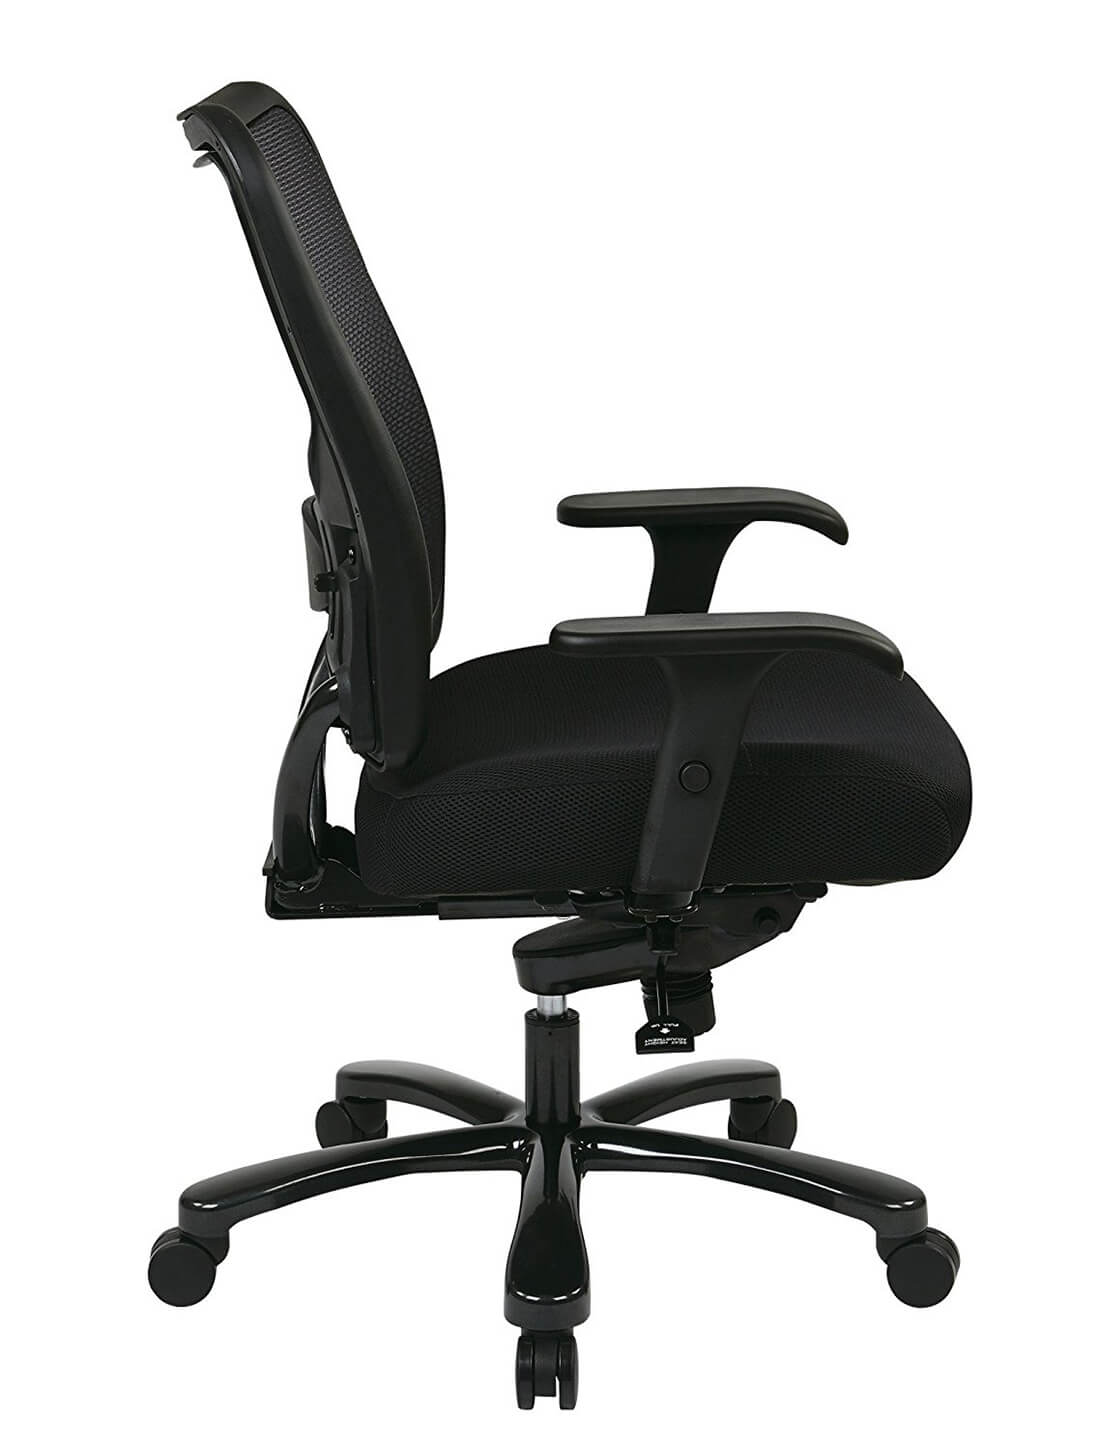 Office Star is awesome chair for tall people